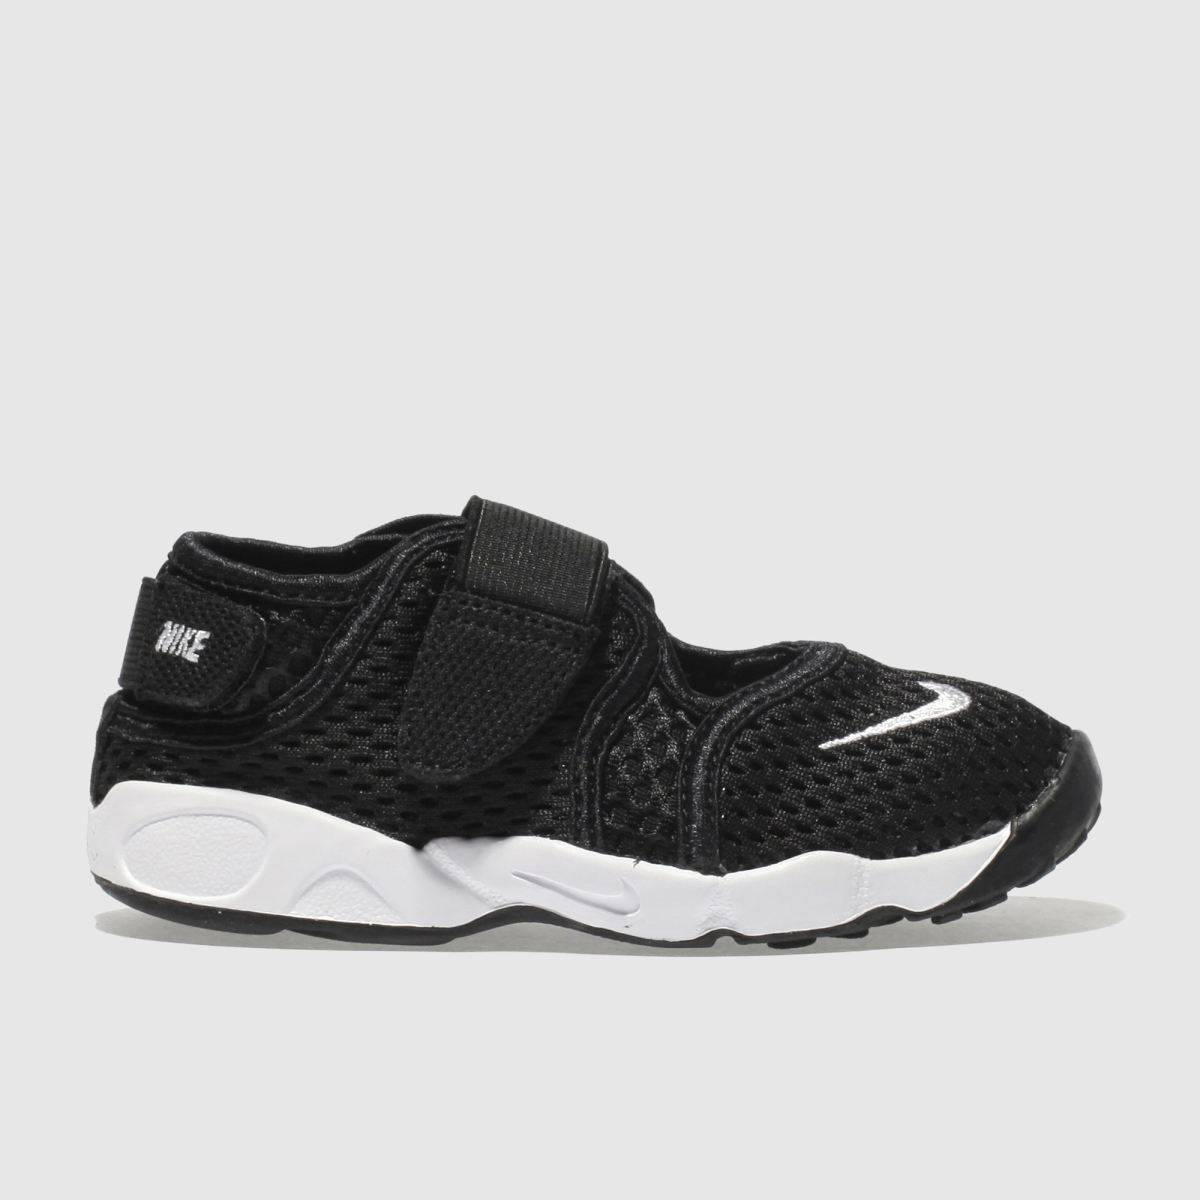 Nike Black Little Rift Unisex Toddler Toddler